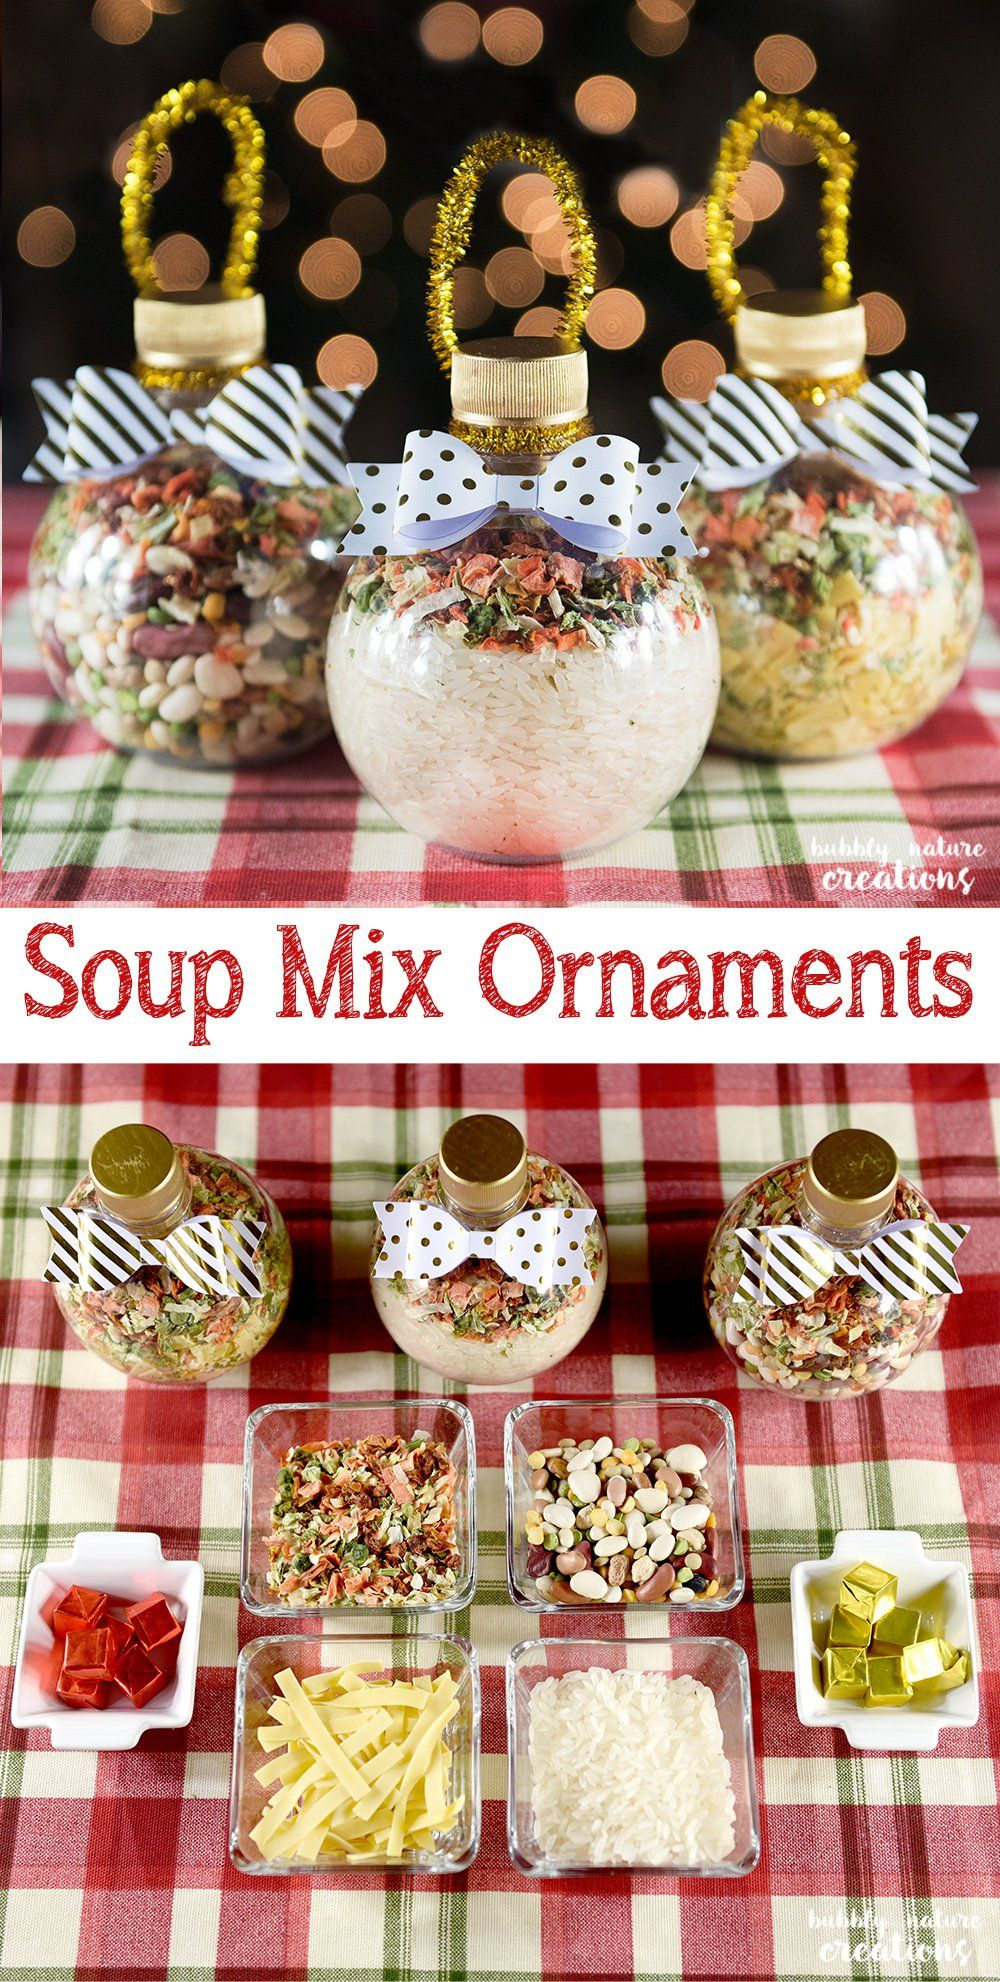 Soup Mix Ornaments! Such A Cute Idea For Easy Christmas